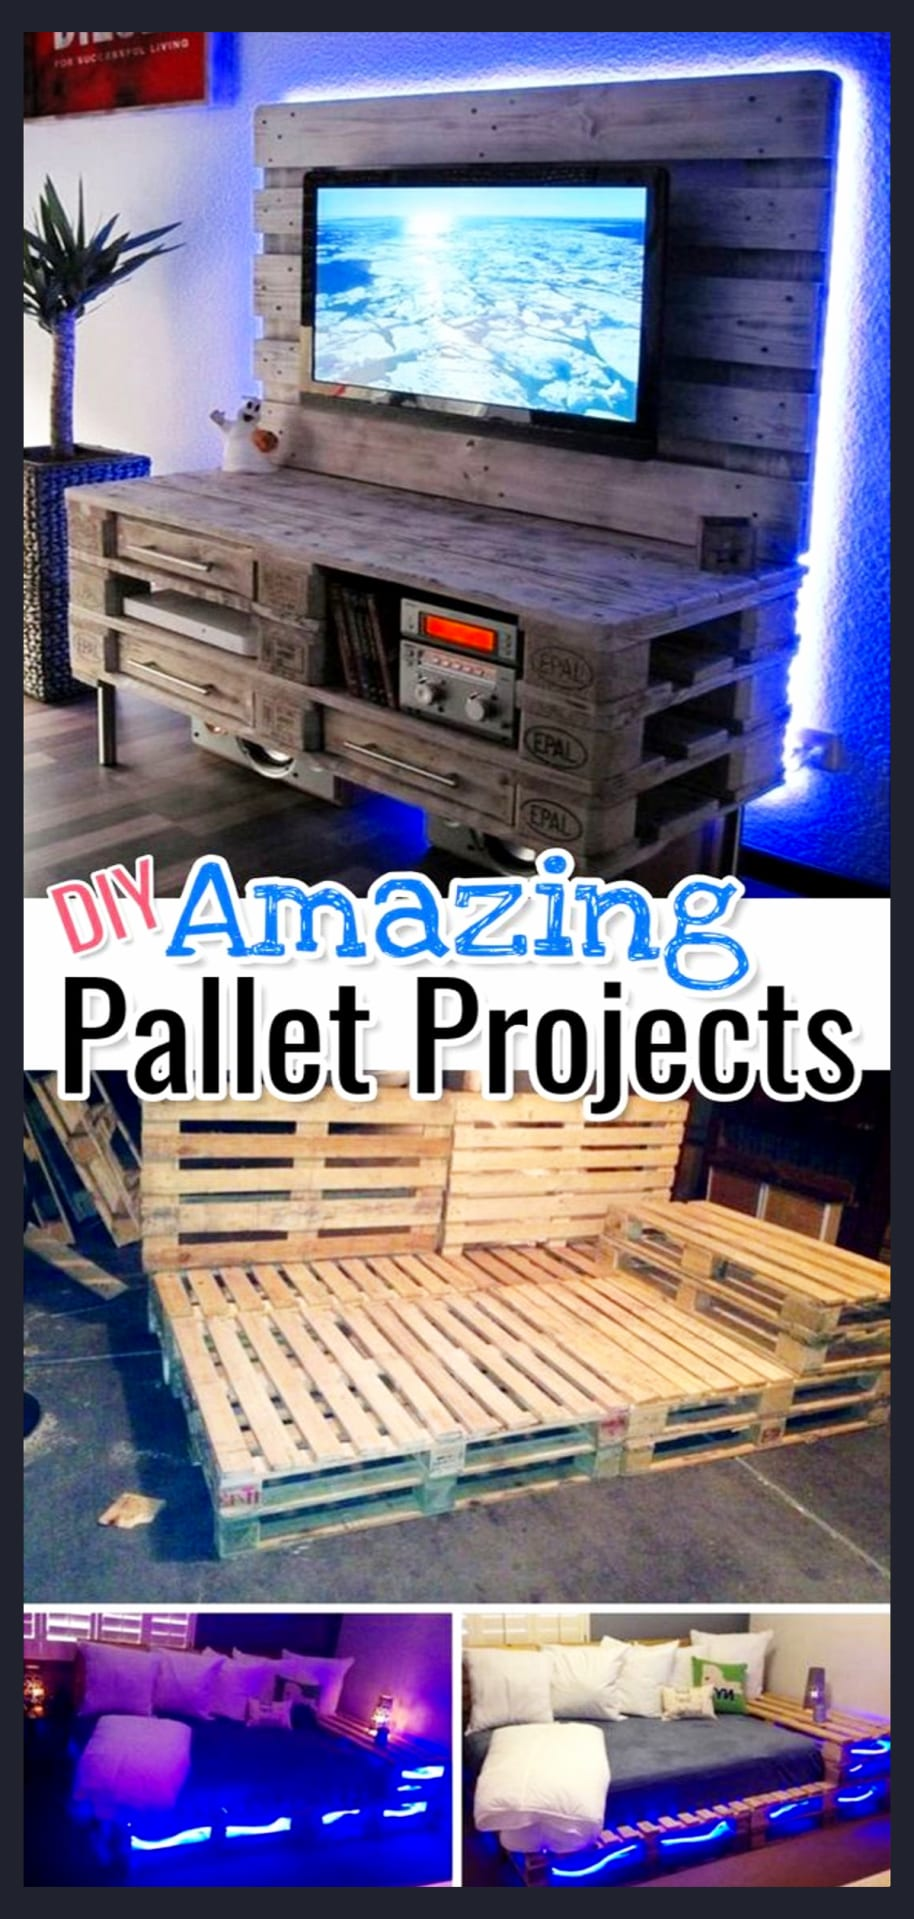 DIY pallet projects - easy furniture pallet projects to make and sell - how to build pallet furniture and more easy pallet projects